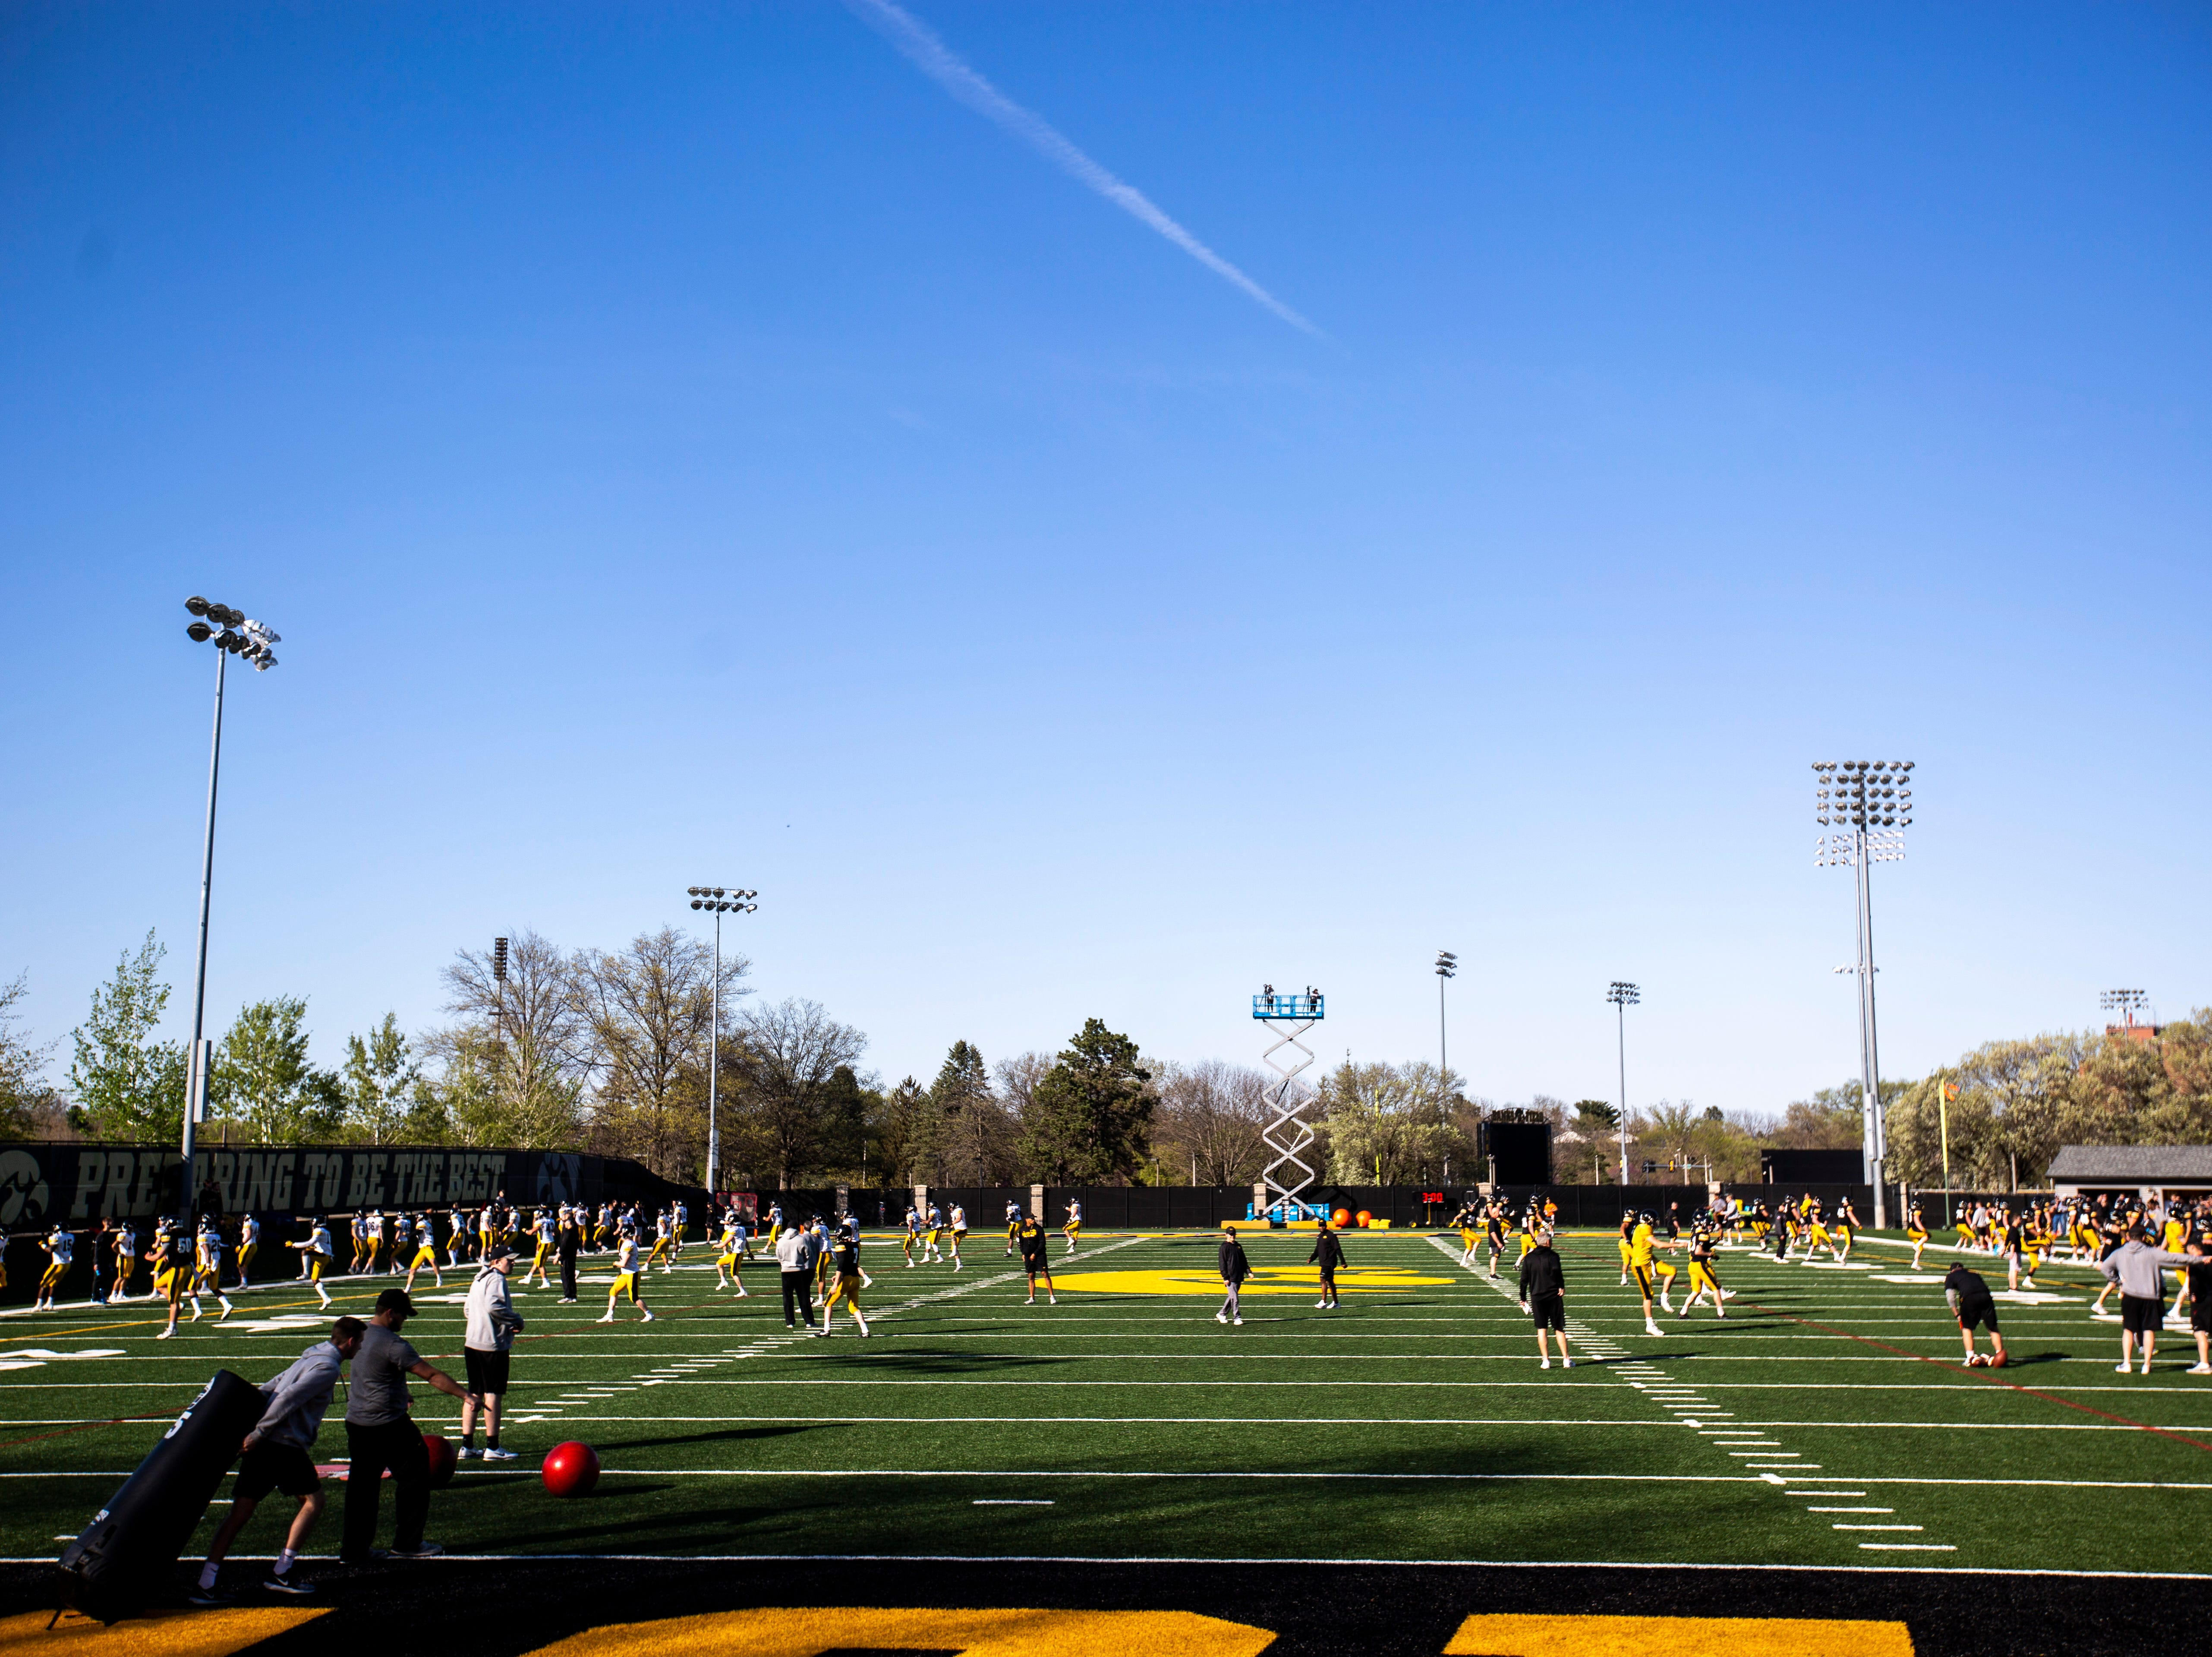 Iowa Hawkeyes get ready during the final spring football practice, Friday, April 26, 2019, at the University of Iowa outdoor practice facility in Iowa City, Iowa.